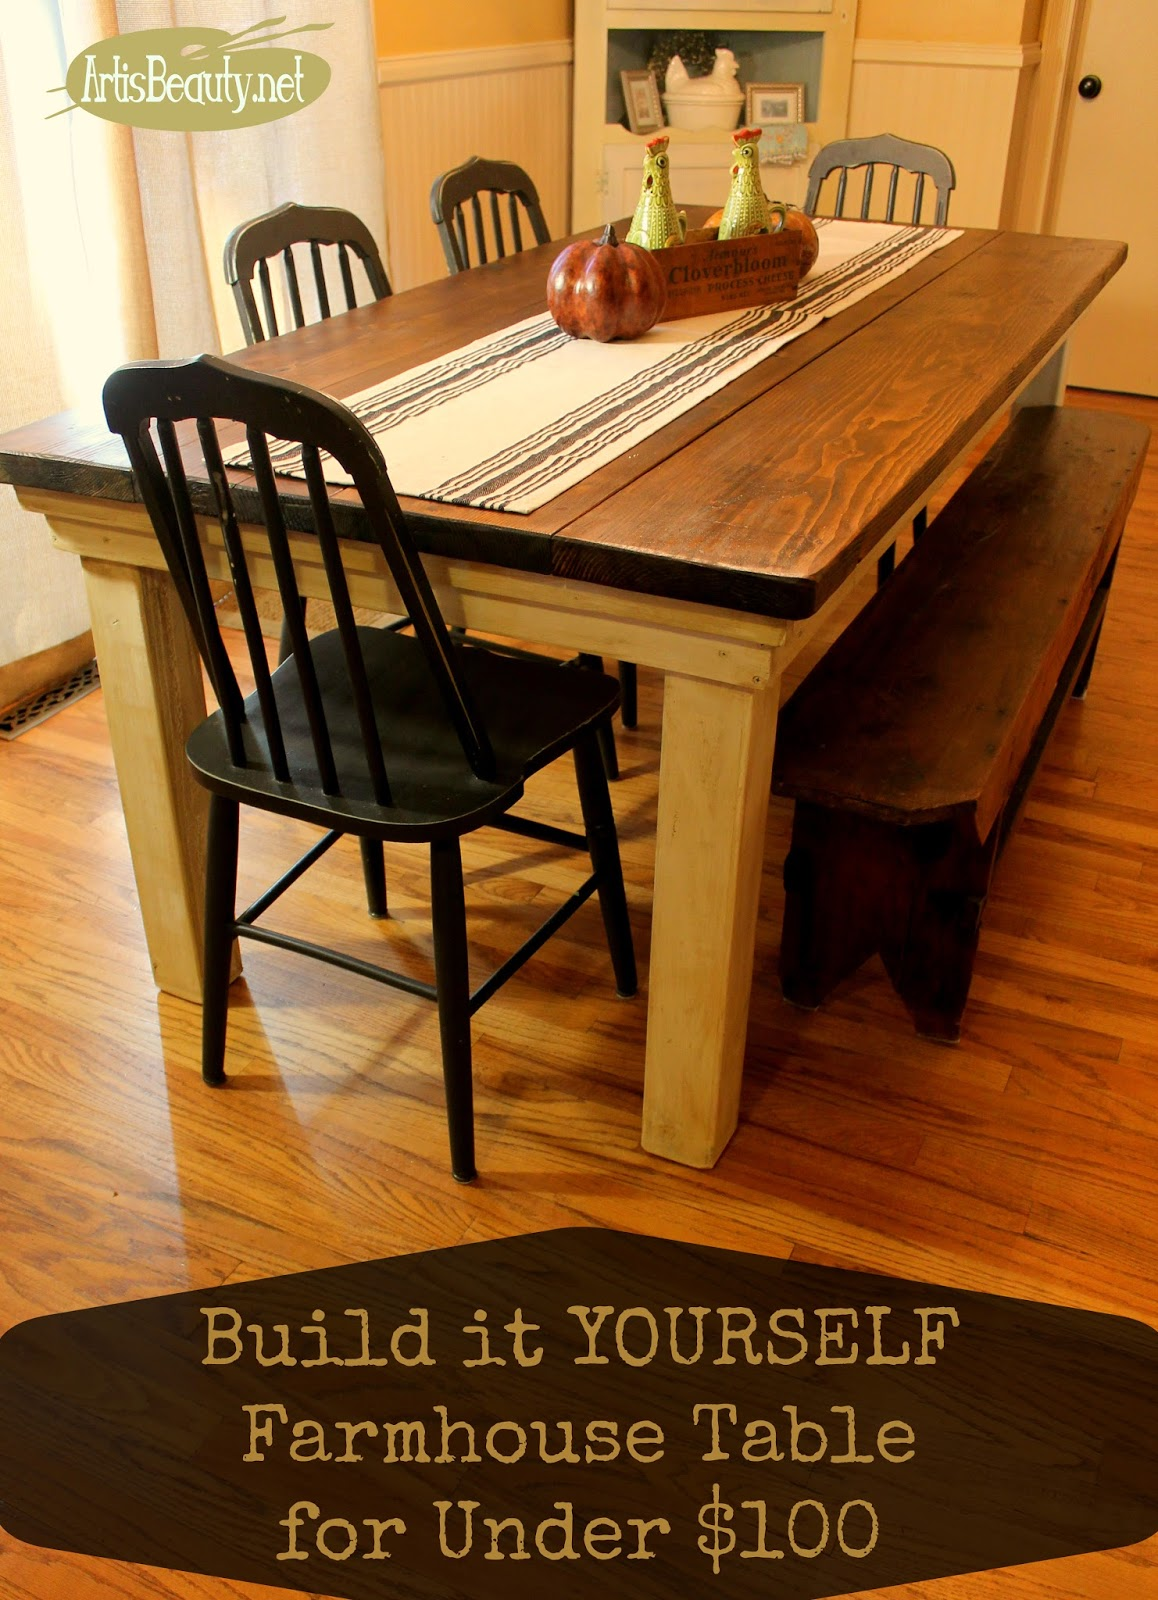 How To Build Your Own FarmHouse Table For Under $100